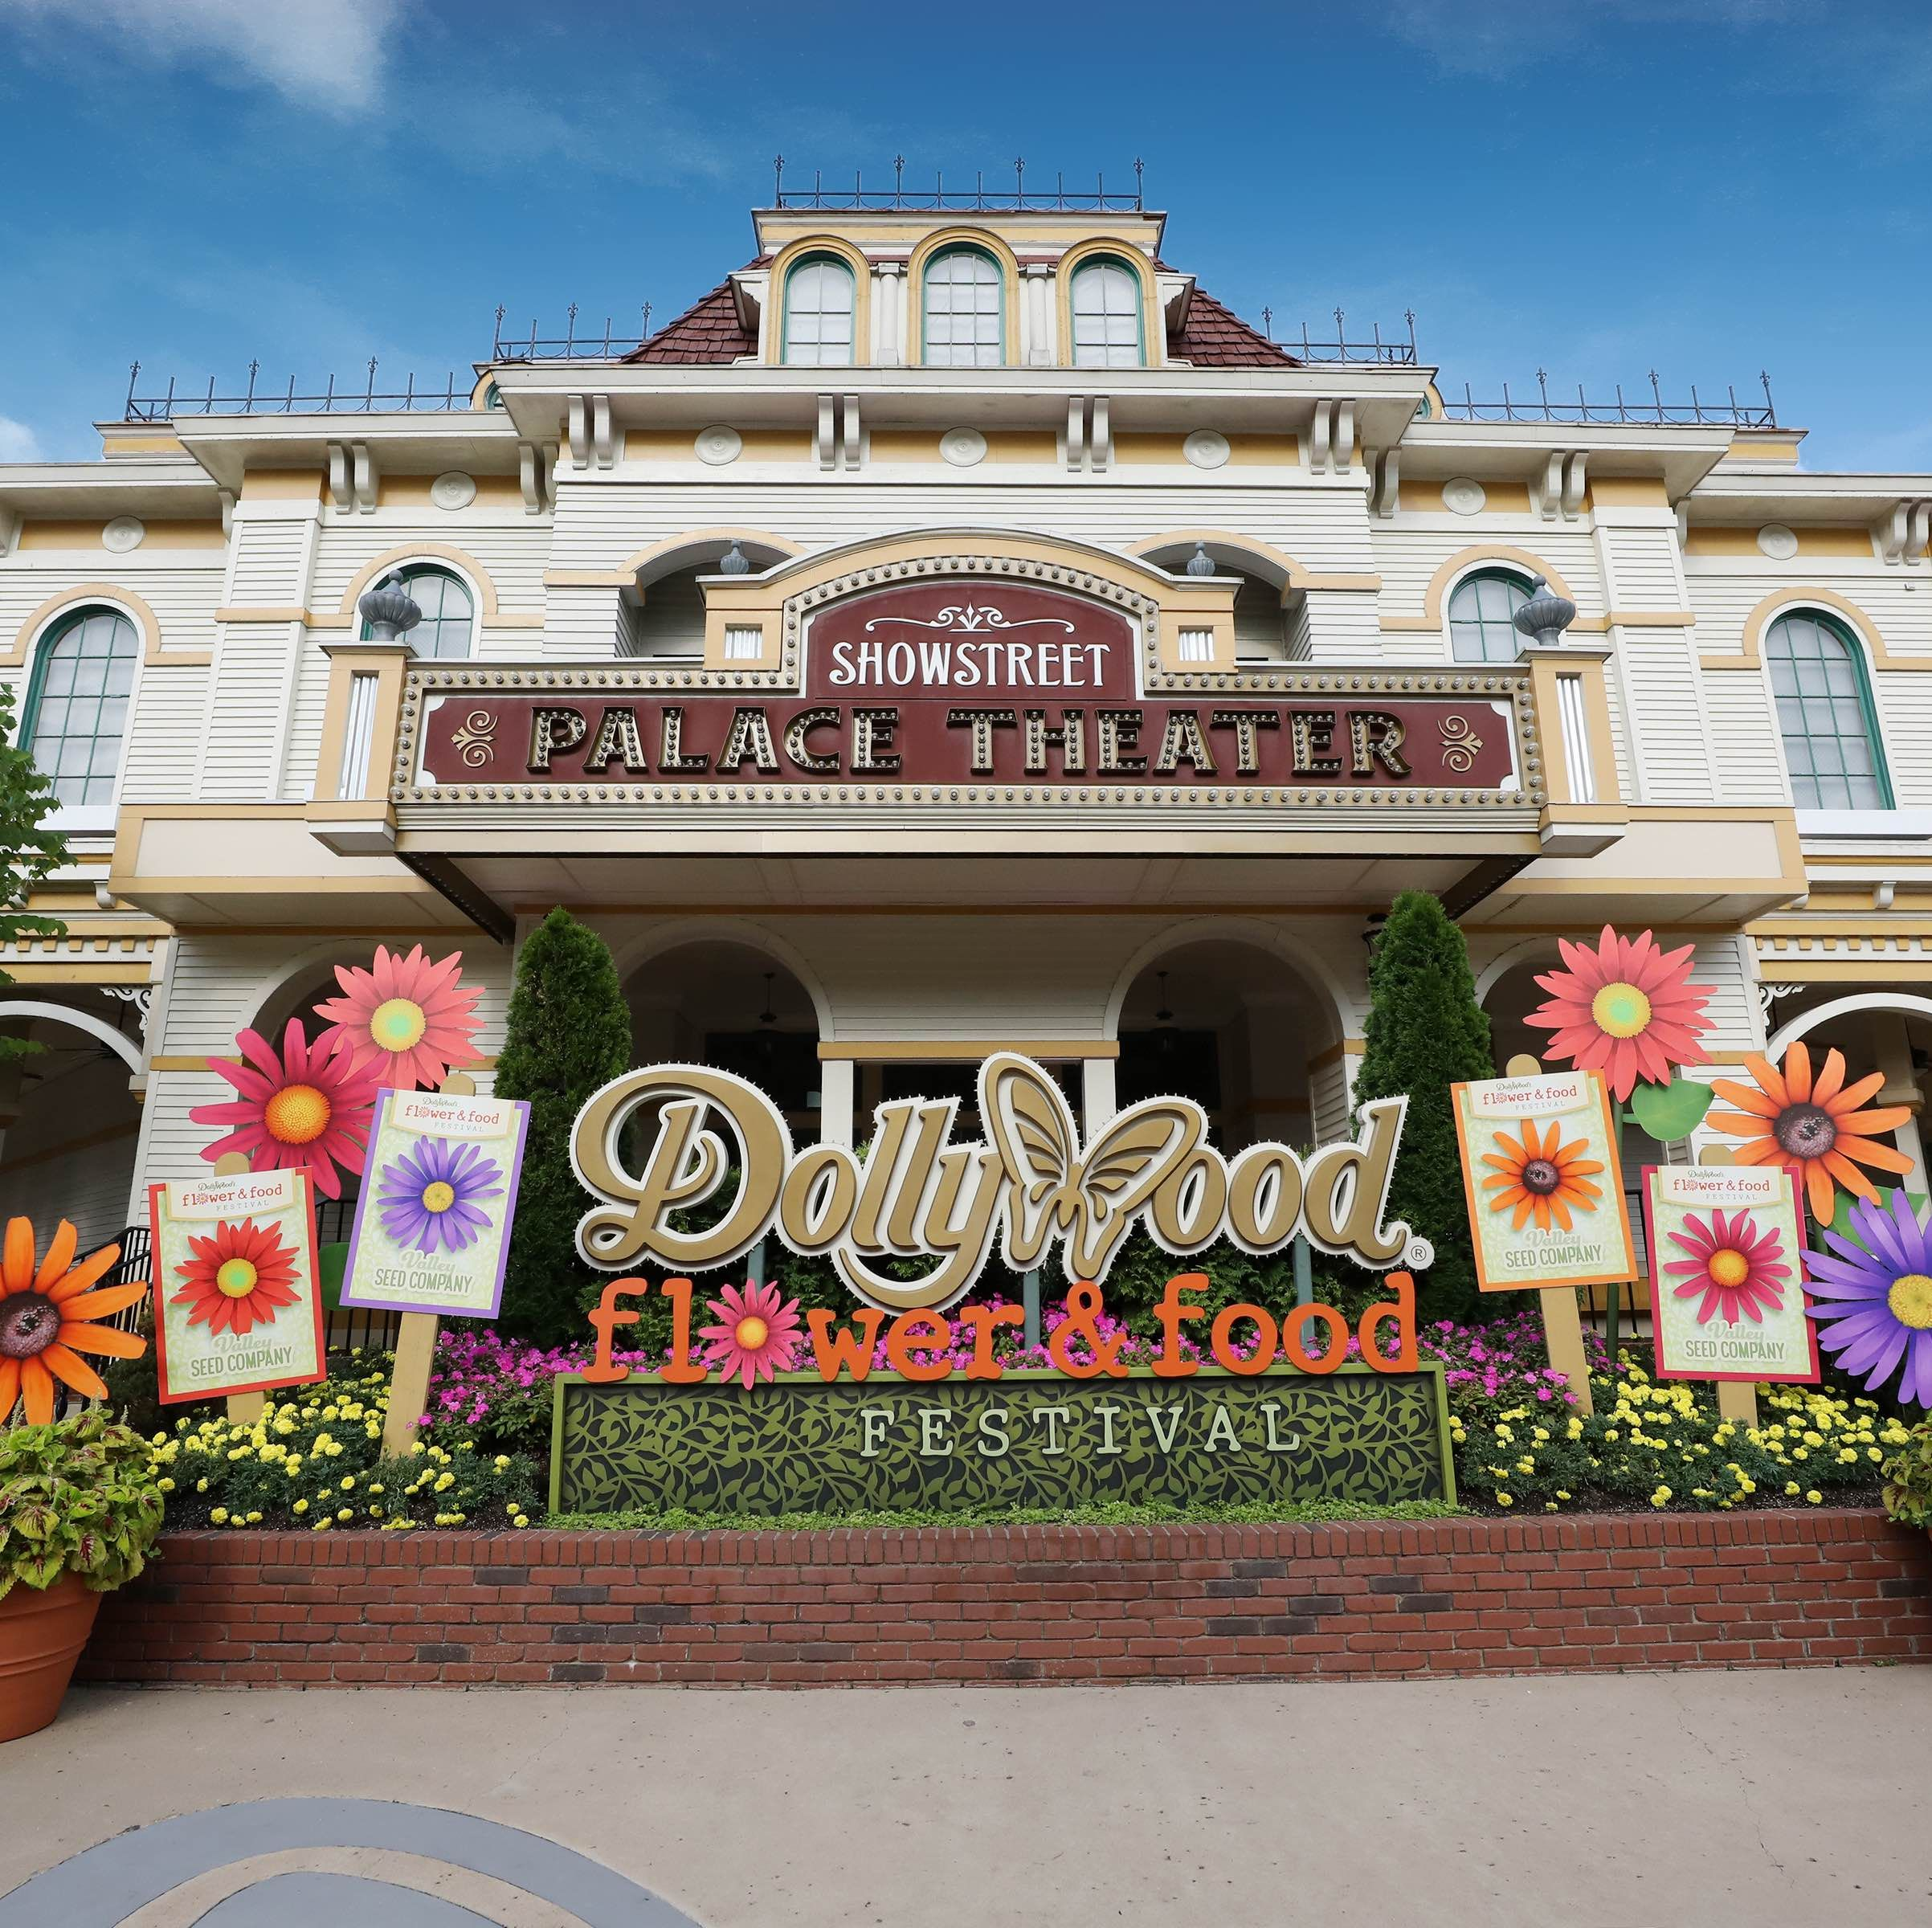 This Flower & Food Festival at Dollywood Features More than 500,000 Flowers